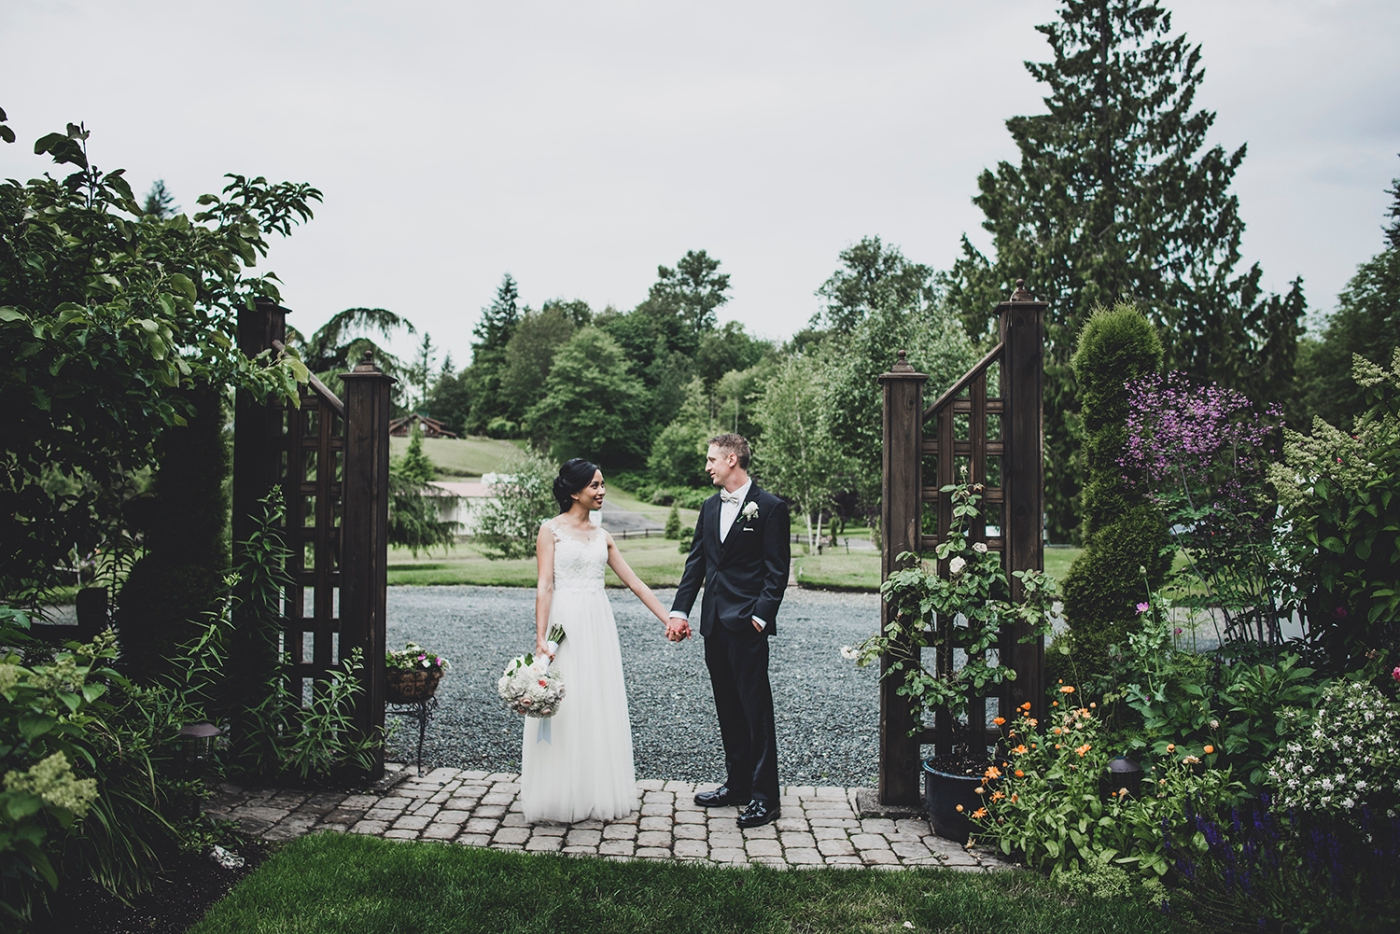 Jane_Speleers_photography_Seattle_Wedding_at_Wild_Rose_estate_2016_Julienne_and_Brian_bride_groom_ DSC_0518